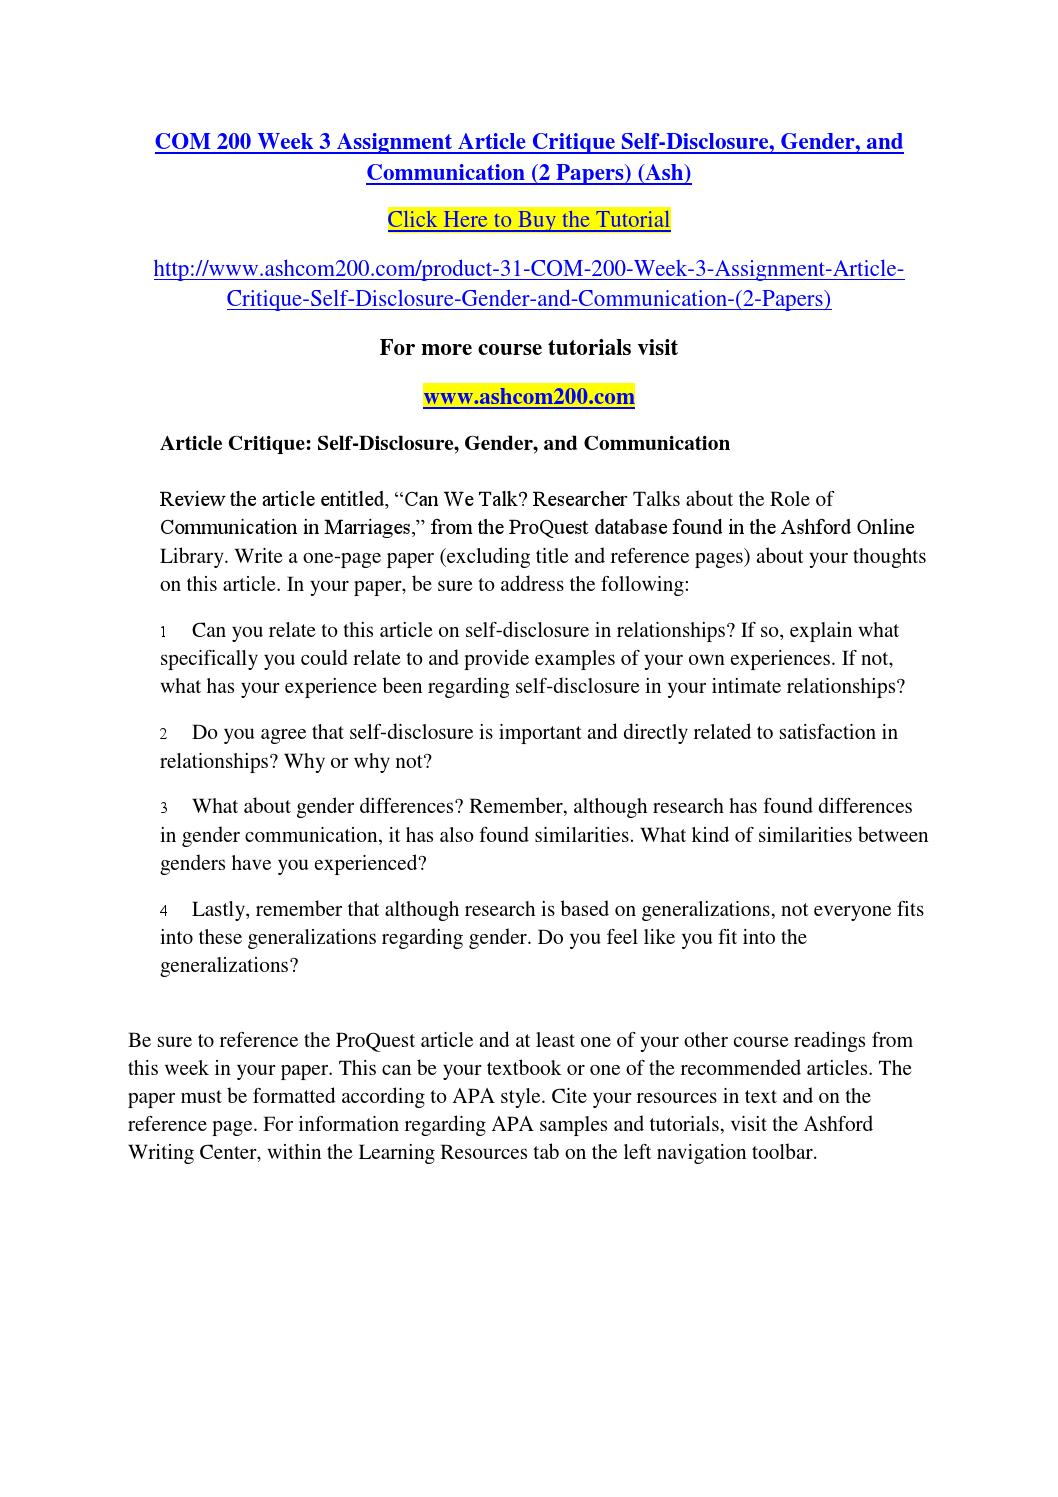 apa reference journal article online manual